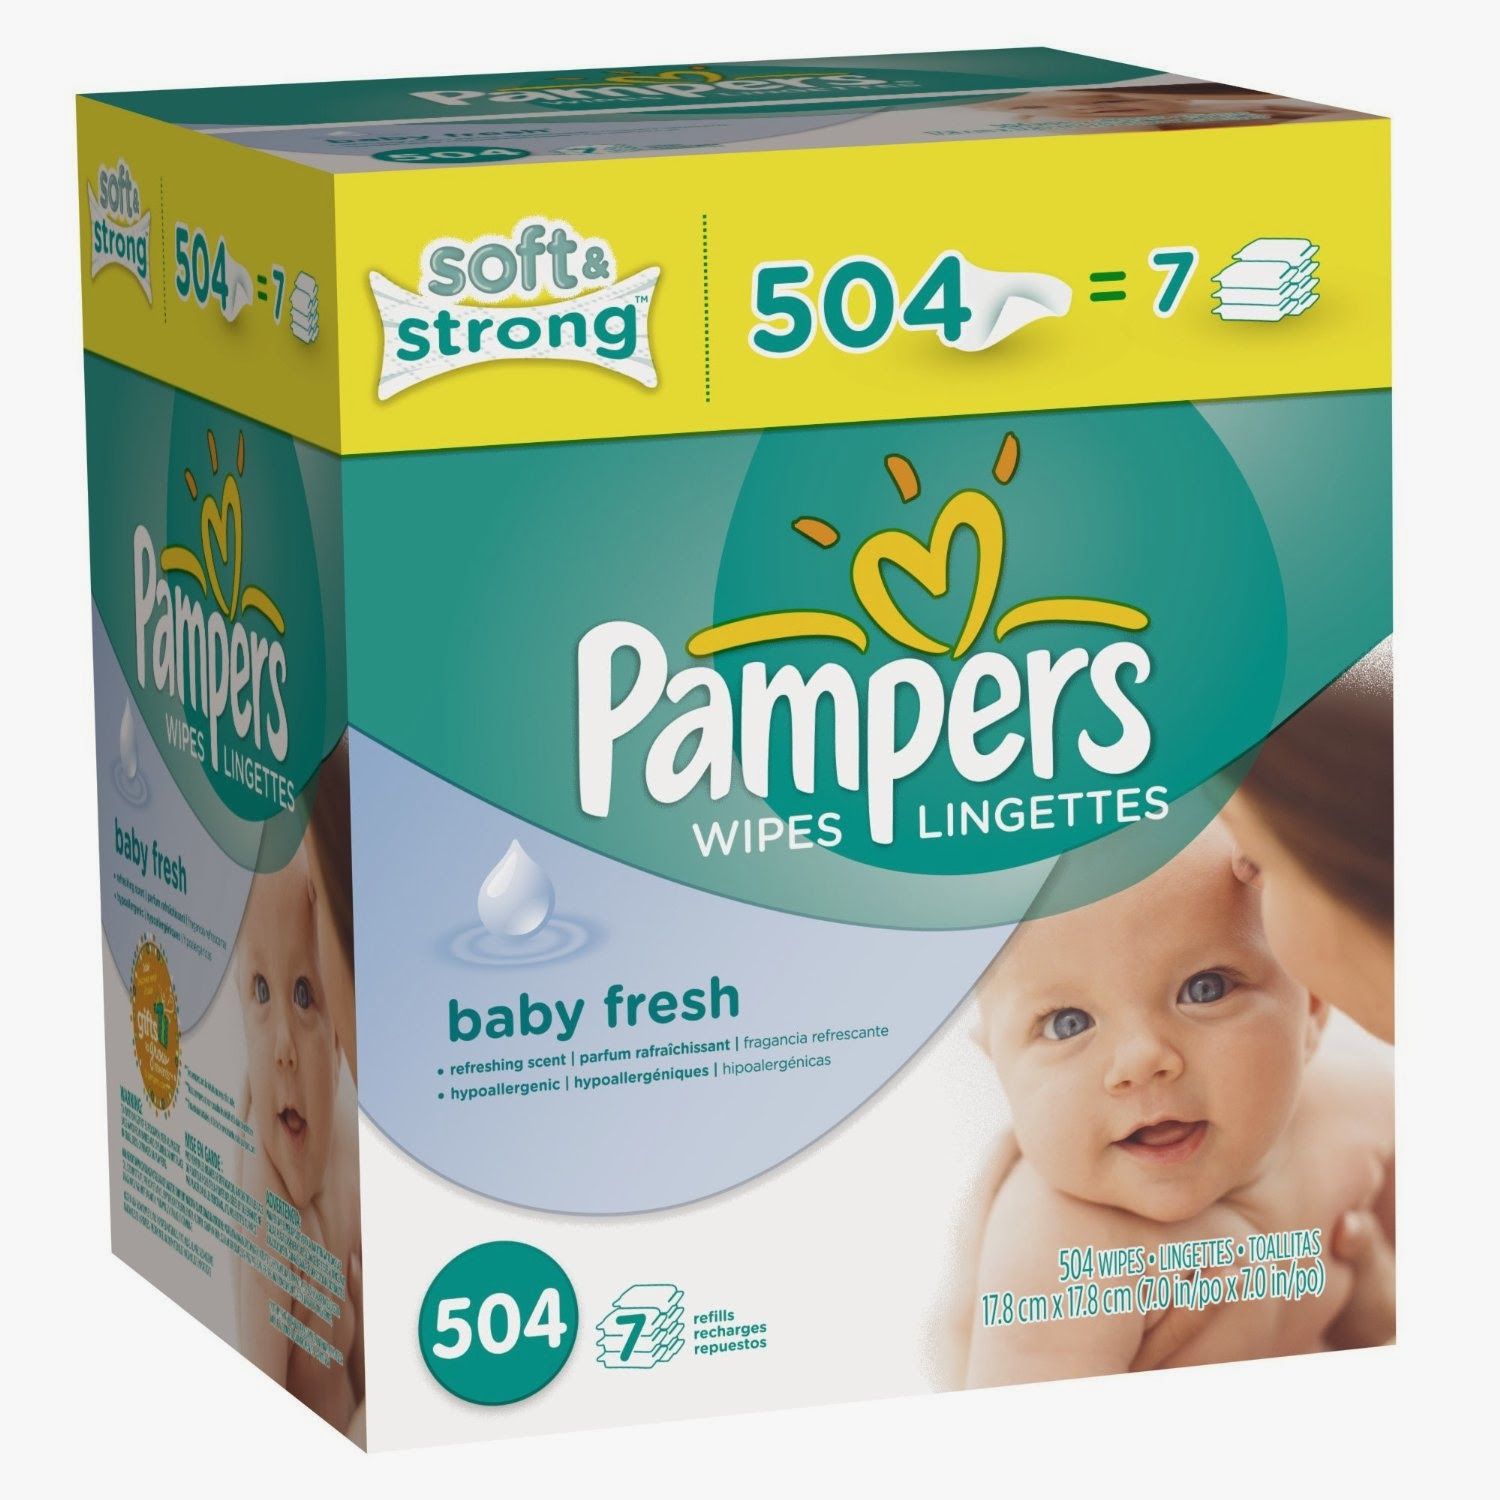 https://www.amazon.com/Pampers-Sensitive-Wipes-Box-Count/dp/B005DLCJX2/ref=as_li_ss_til?tag=soutsubusavi-20&linkCode=w01&creativeASIN=B005DLCJX2